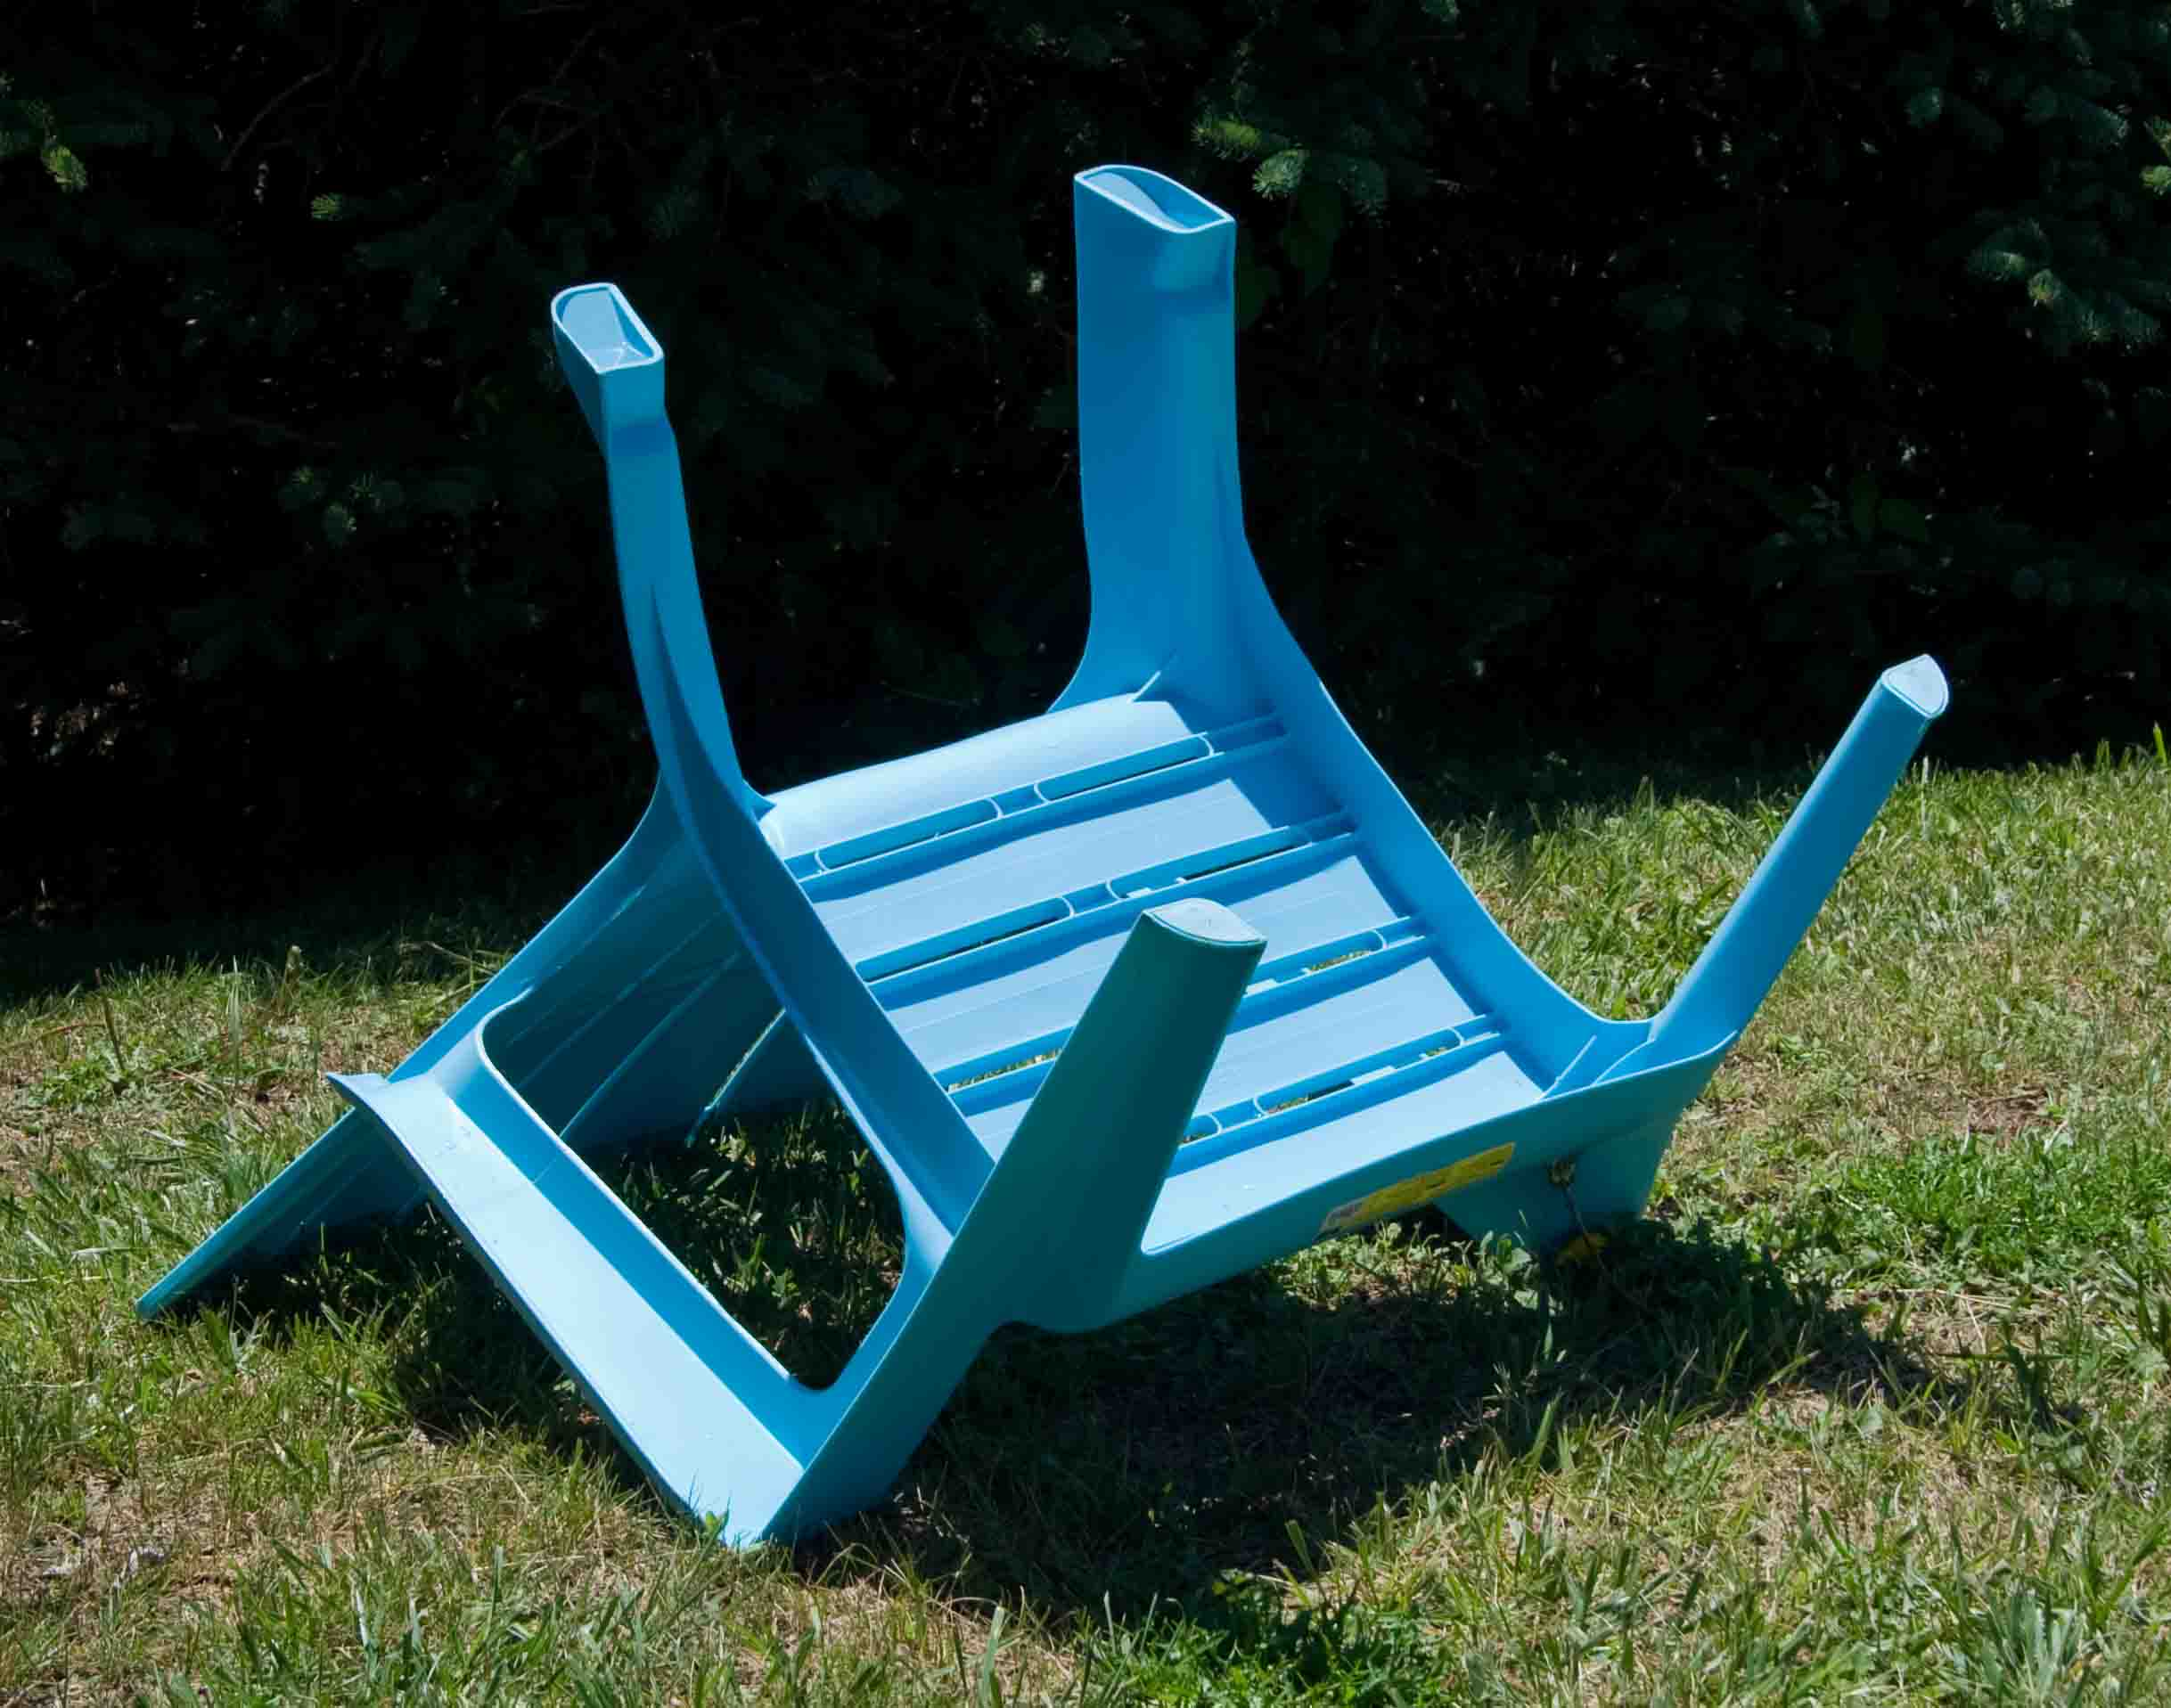 resin adirondack chairs australia wedding hall plastic chair so wrong duane s rants raves and reviews